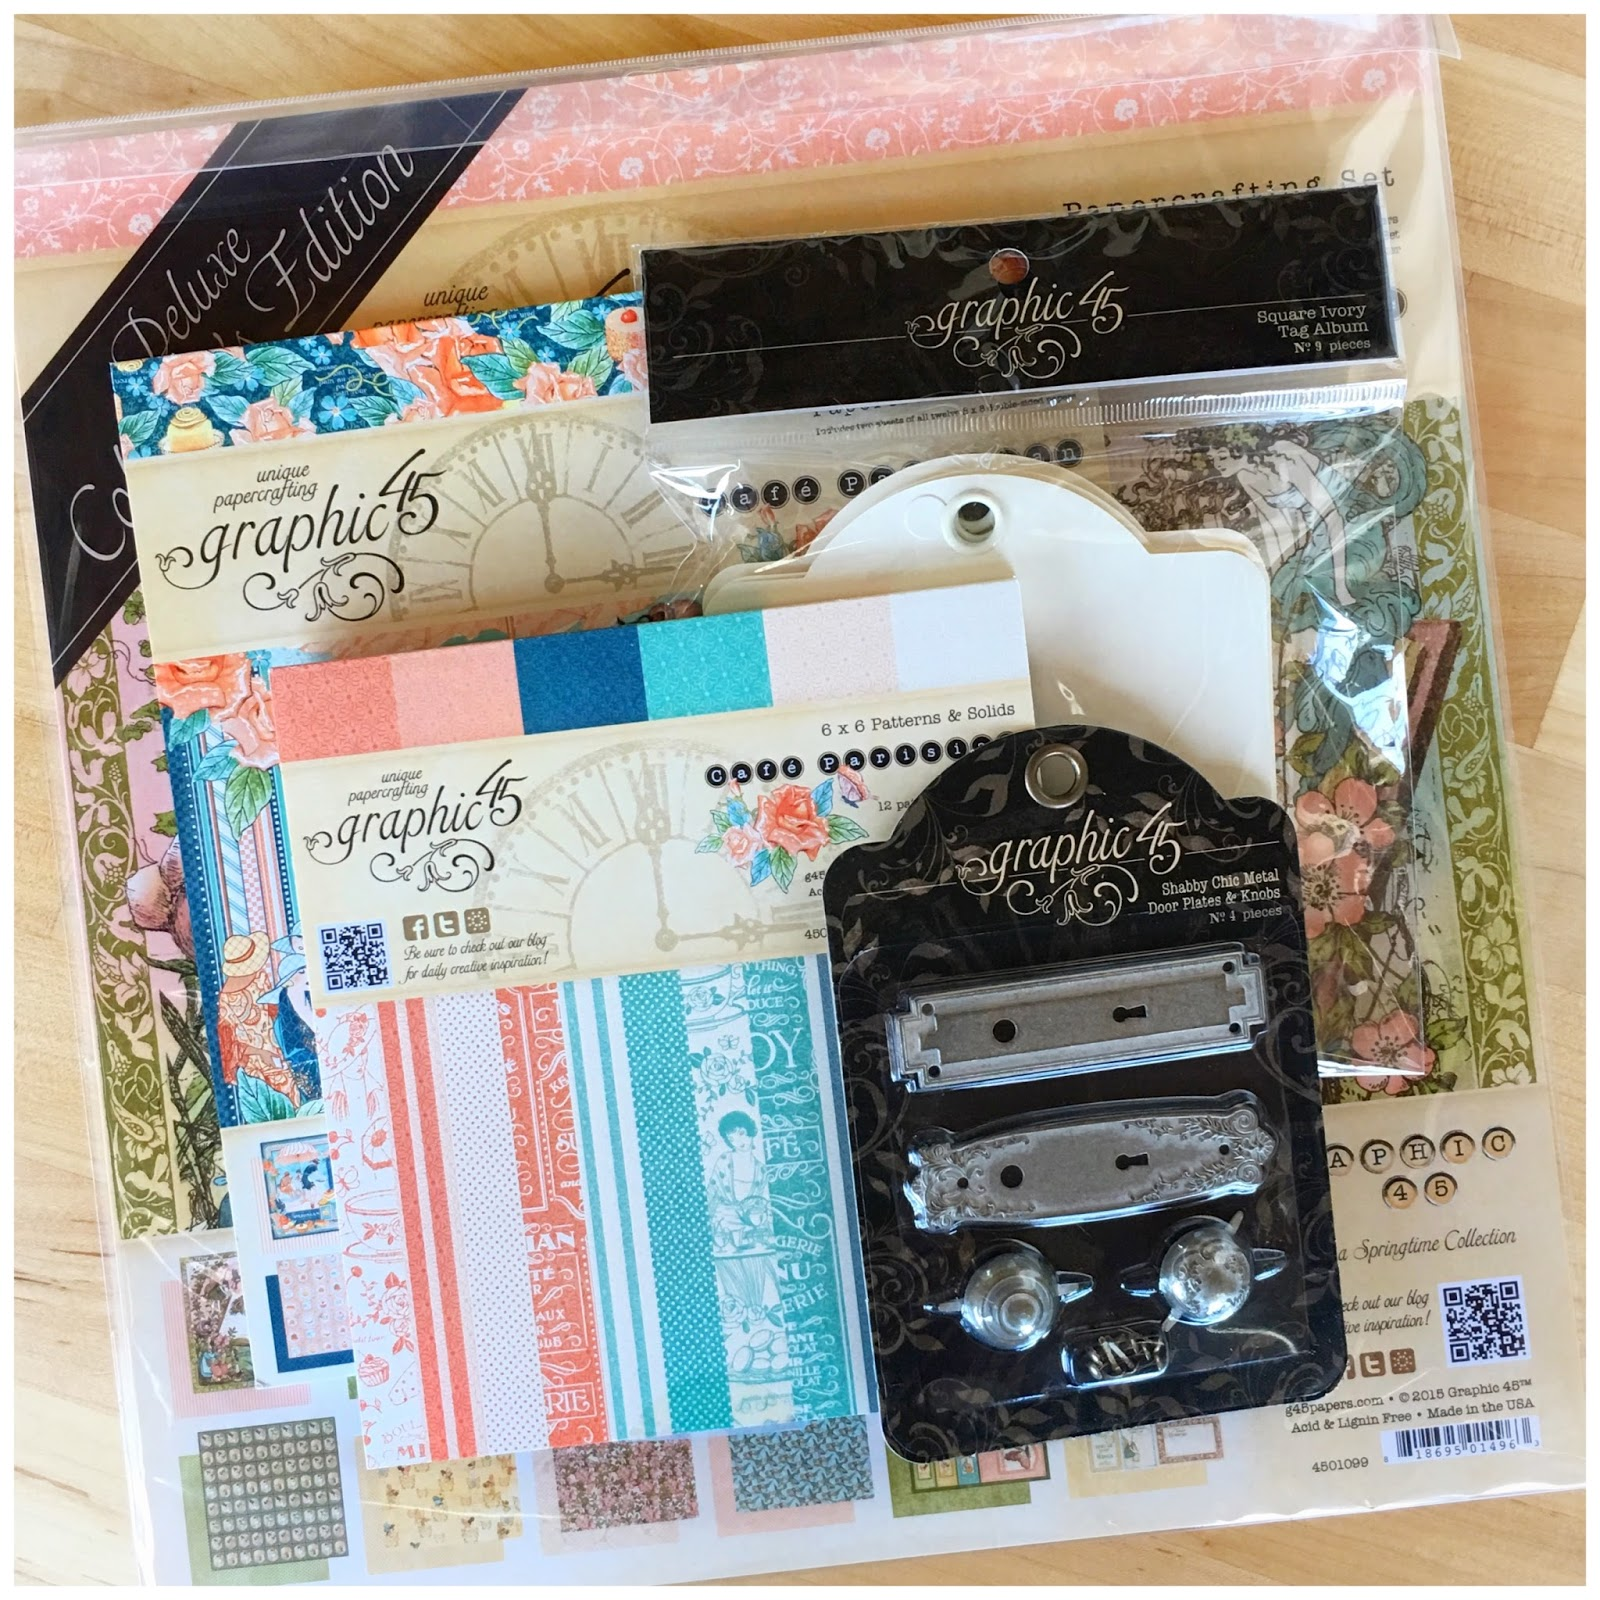 Once Upon a Springtime, Deluxe Collector's Edition, Cafe Parisian, 8x8, 6x6 paper pad, Staples, Tags, Door Plates and Knobs, $60.jpeg